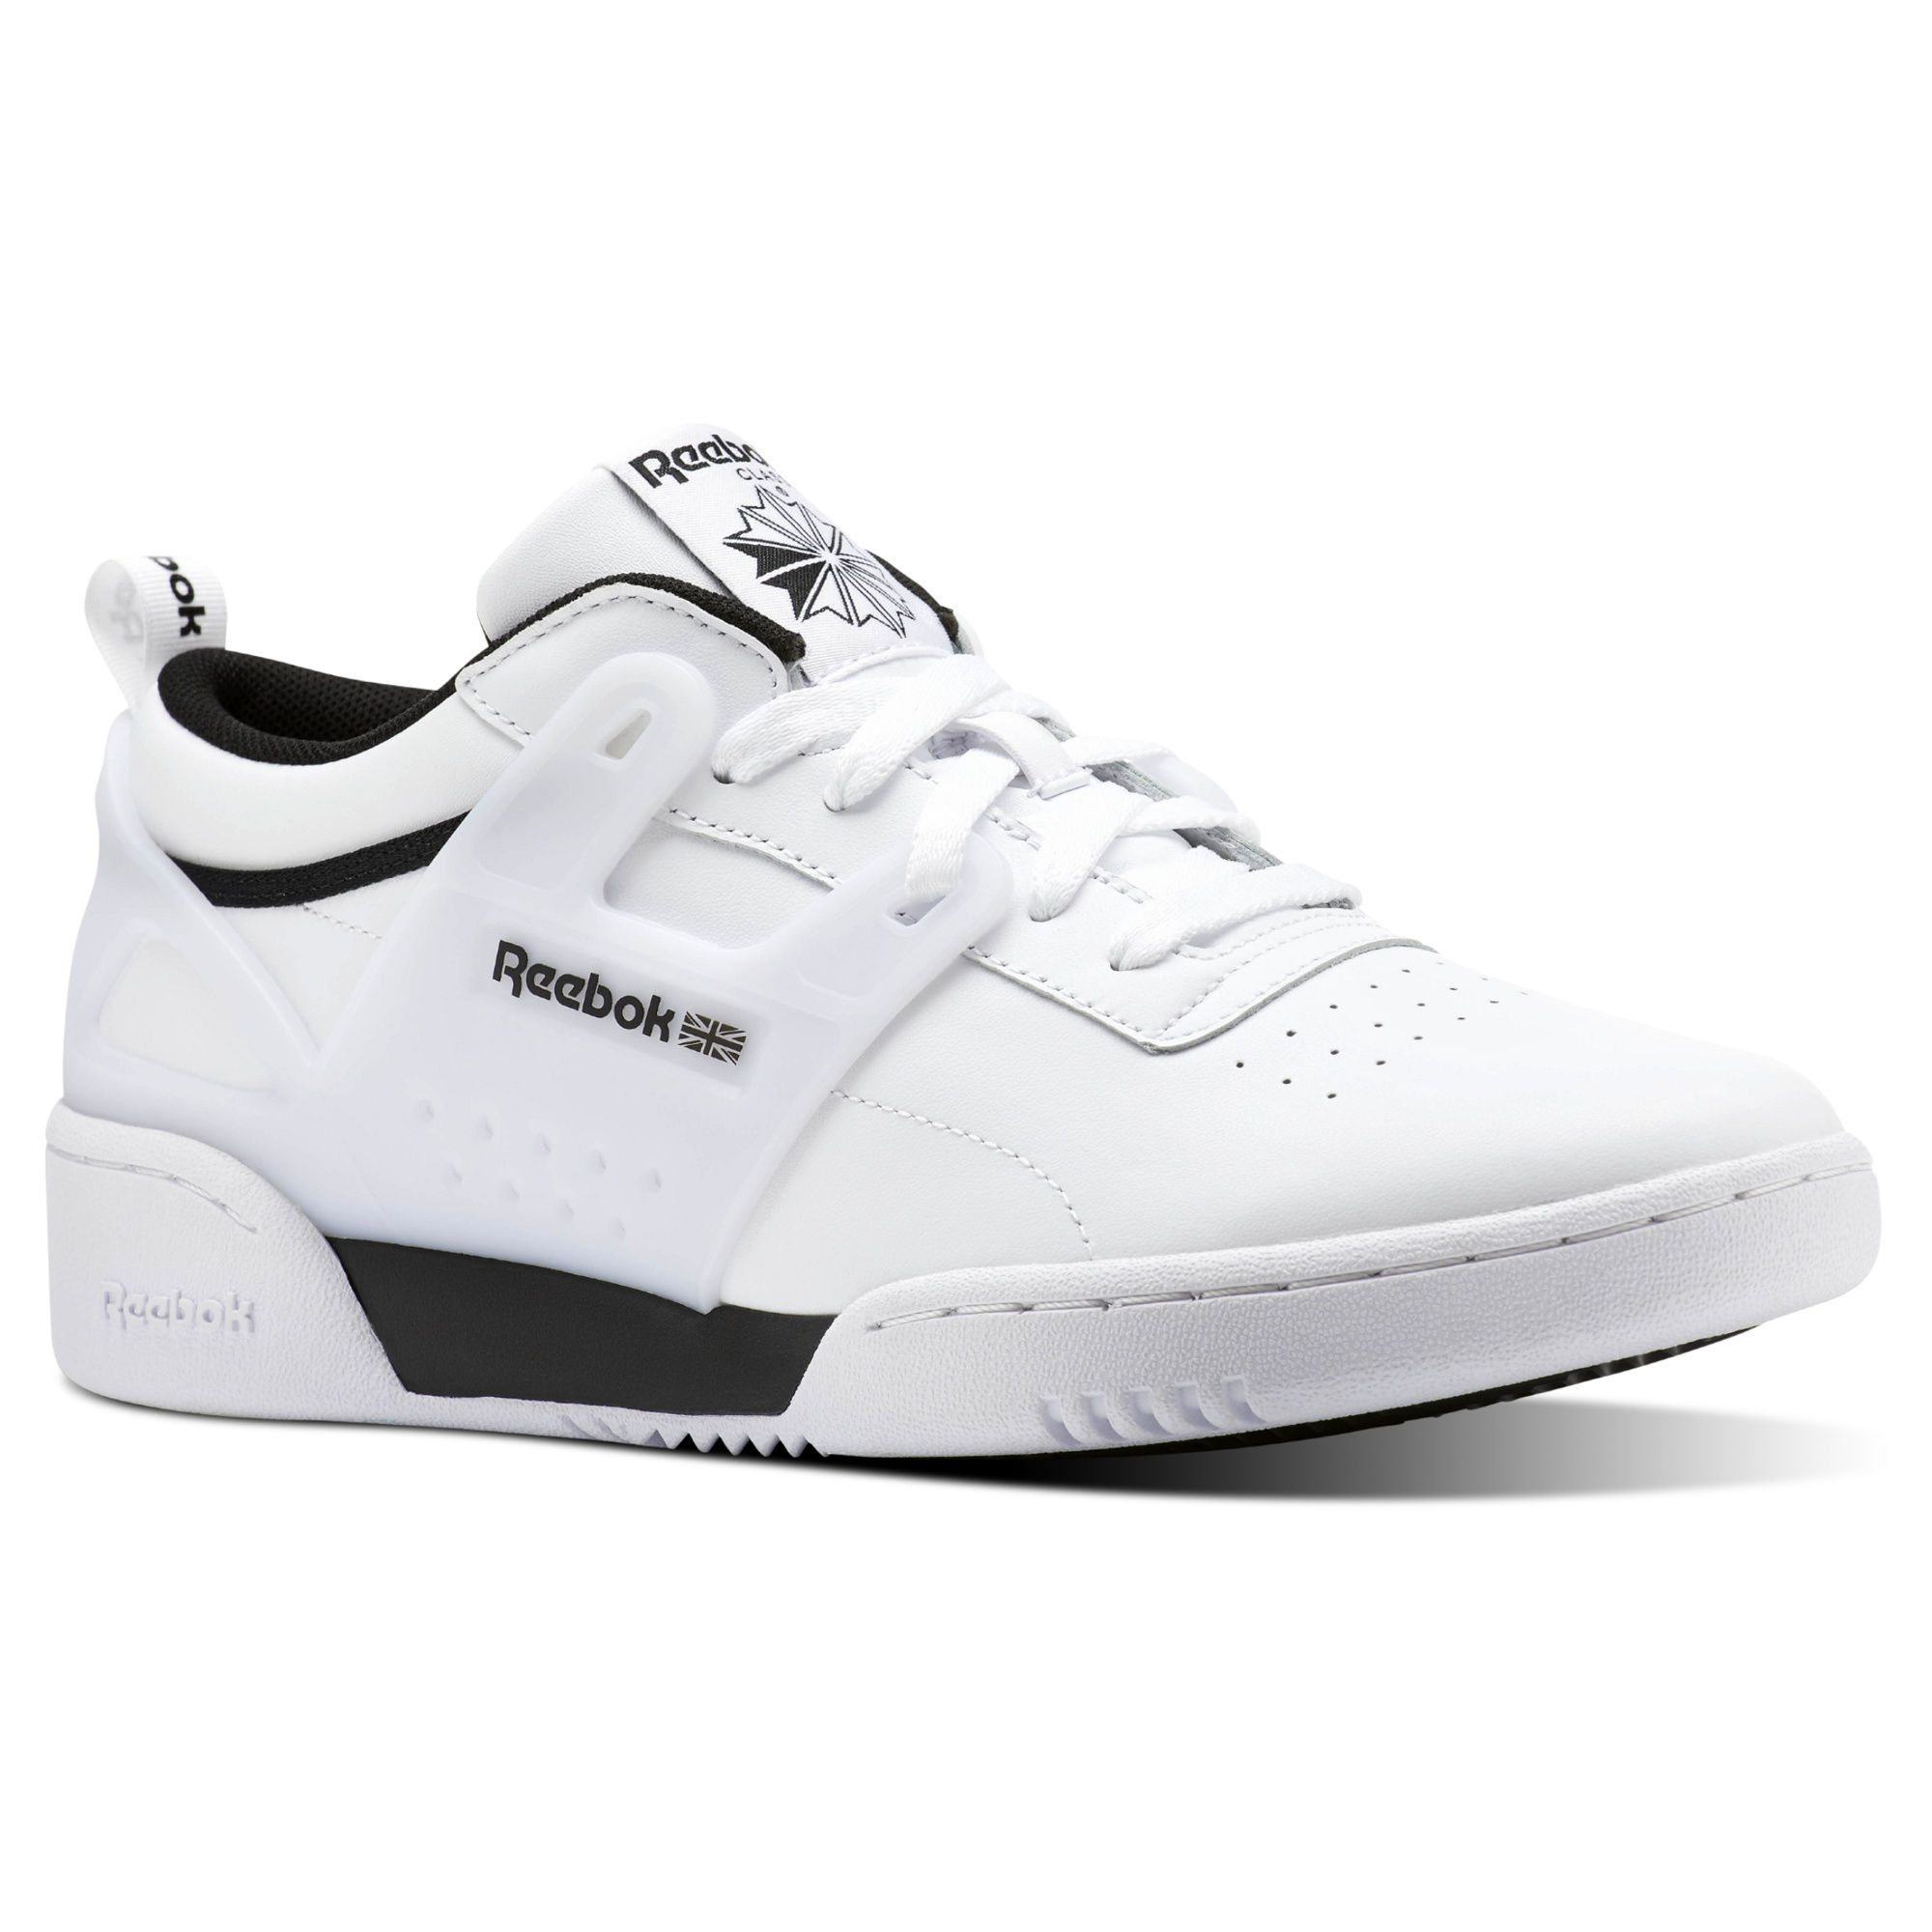 fa9887526eabe Workout Advance L in 2019 | My type of shoes/sneakers | White reebok ...